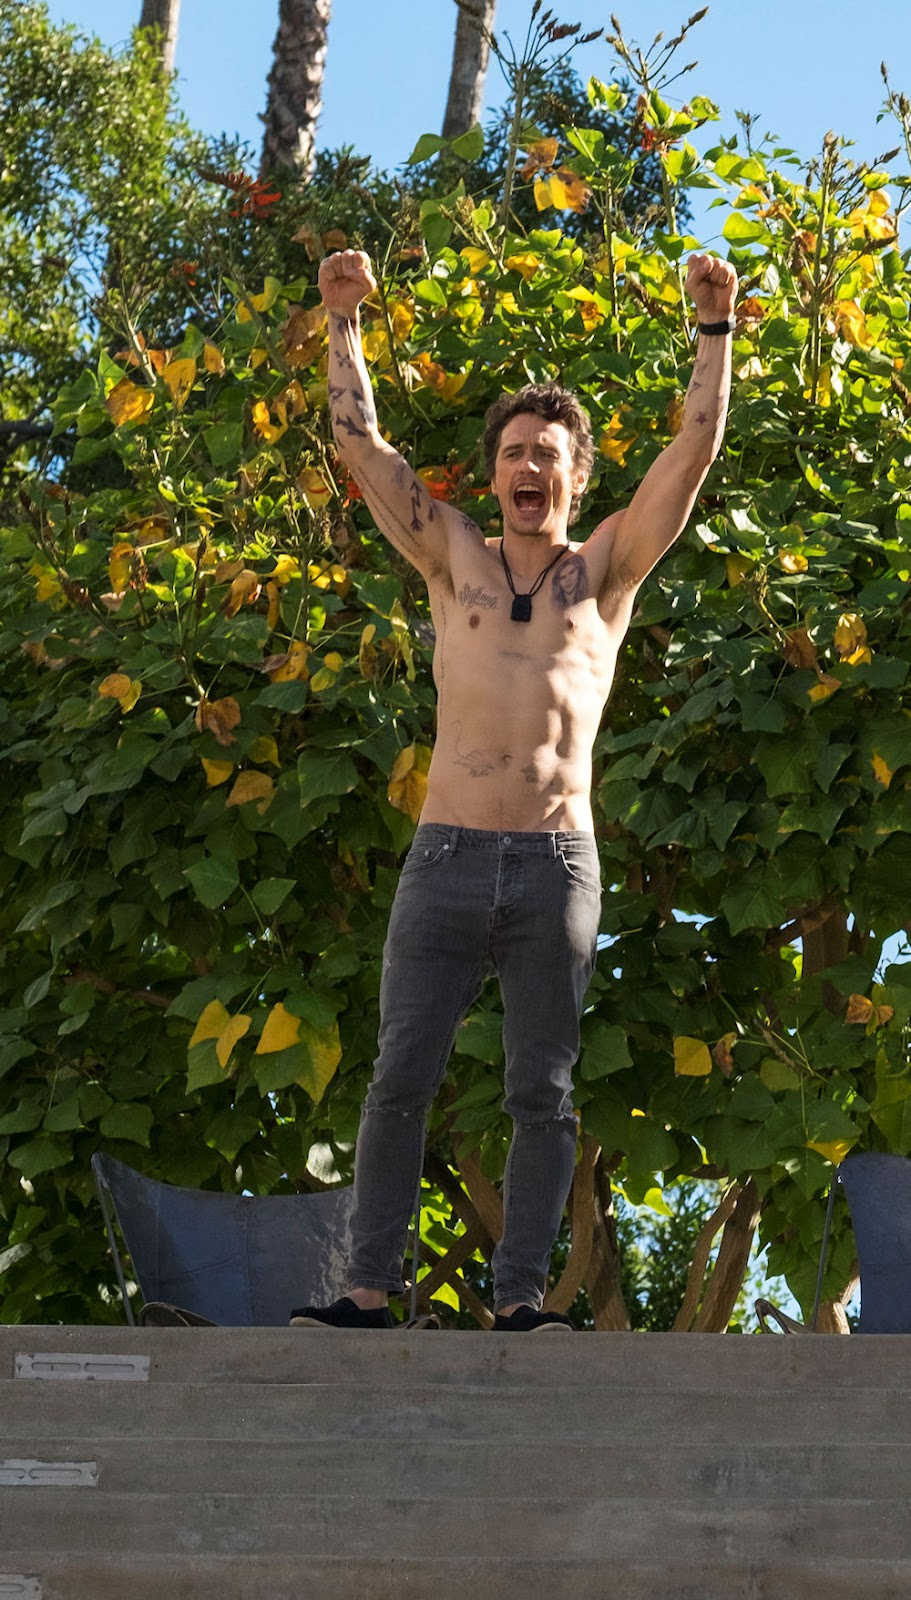 James Franco in WHY HIM?. (Photo by Scott Garfield / courtesy of 20th Century Fox).